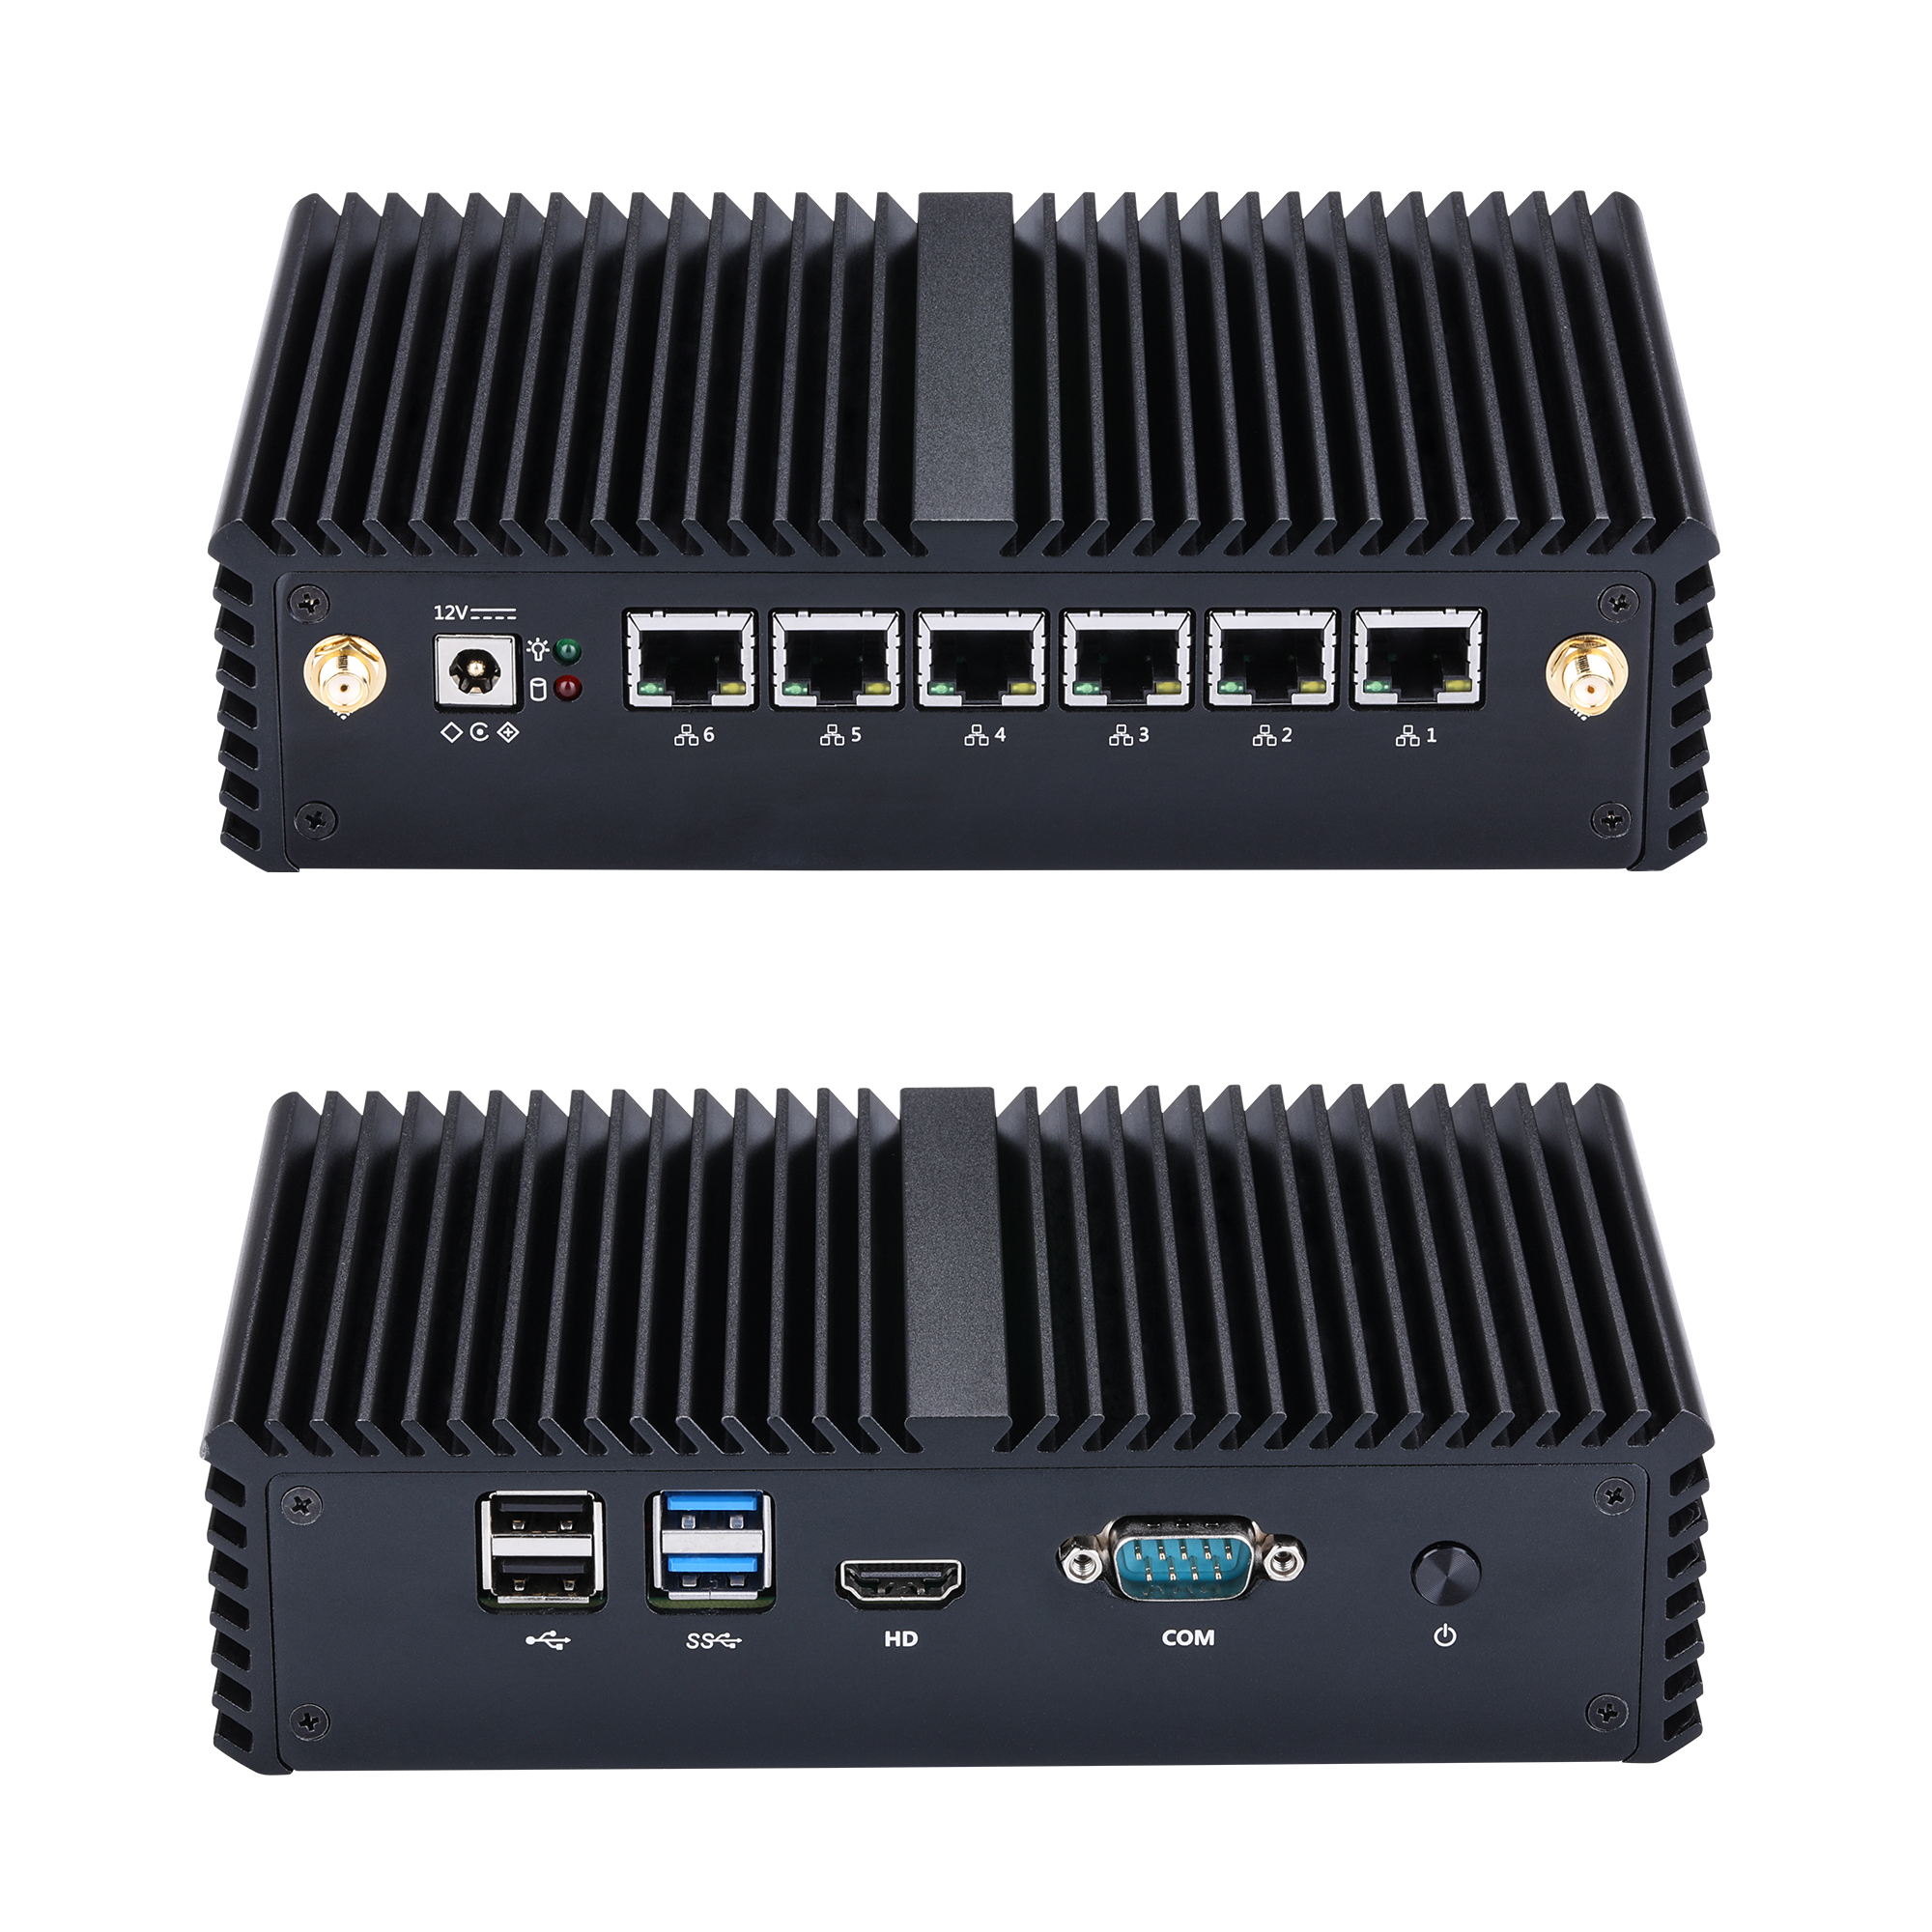 New Fanless Aes Ni Core I3 I5 I7 Firewall 6 Gigabit Lan Mini Computer,1080P Office Gaterway Home Router